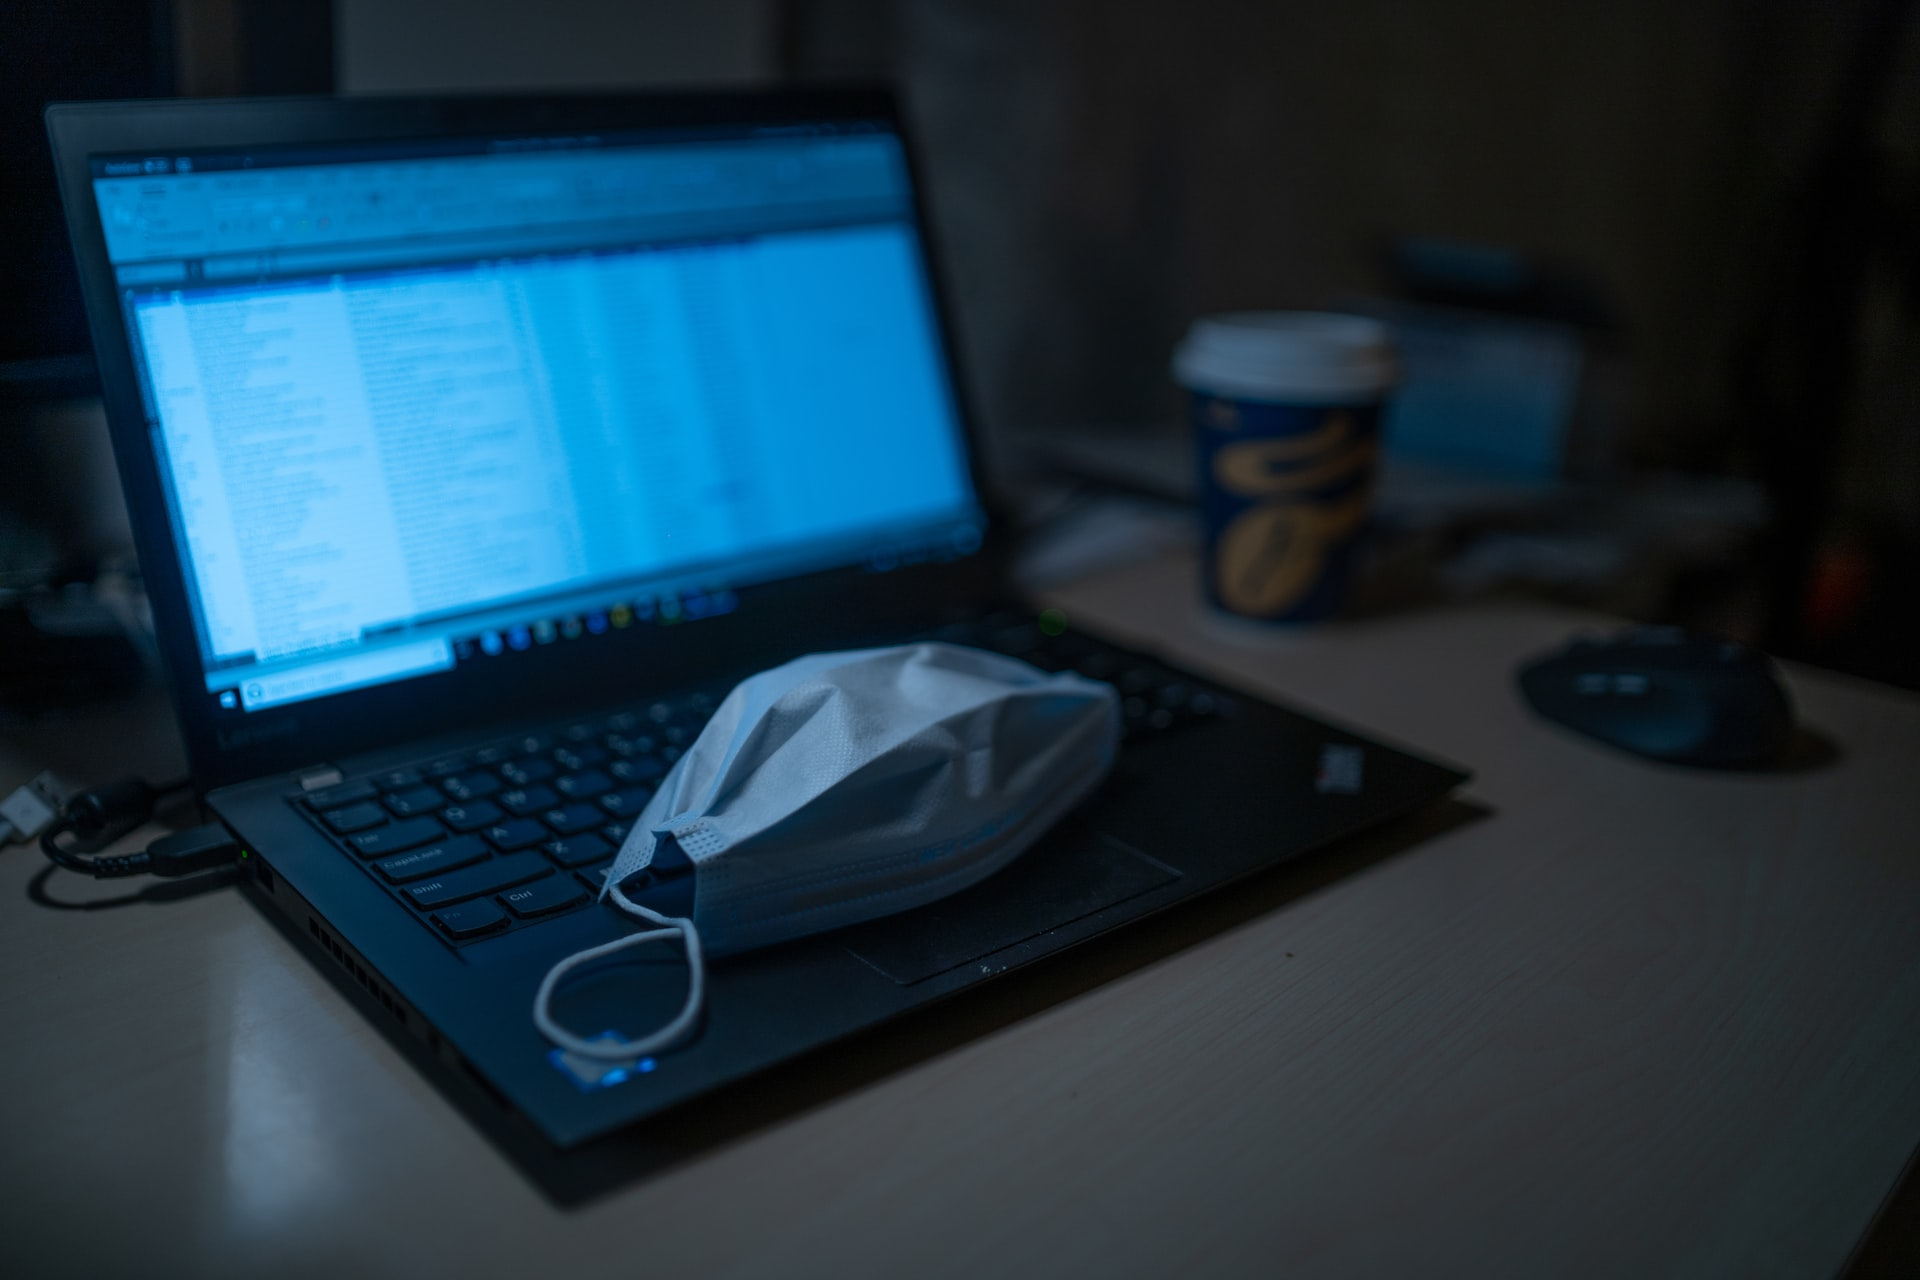 Laptop and a white protective mask representing the pandemic